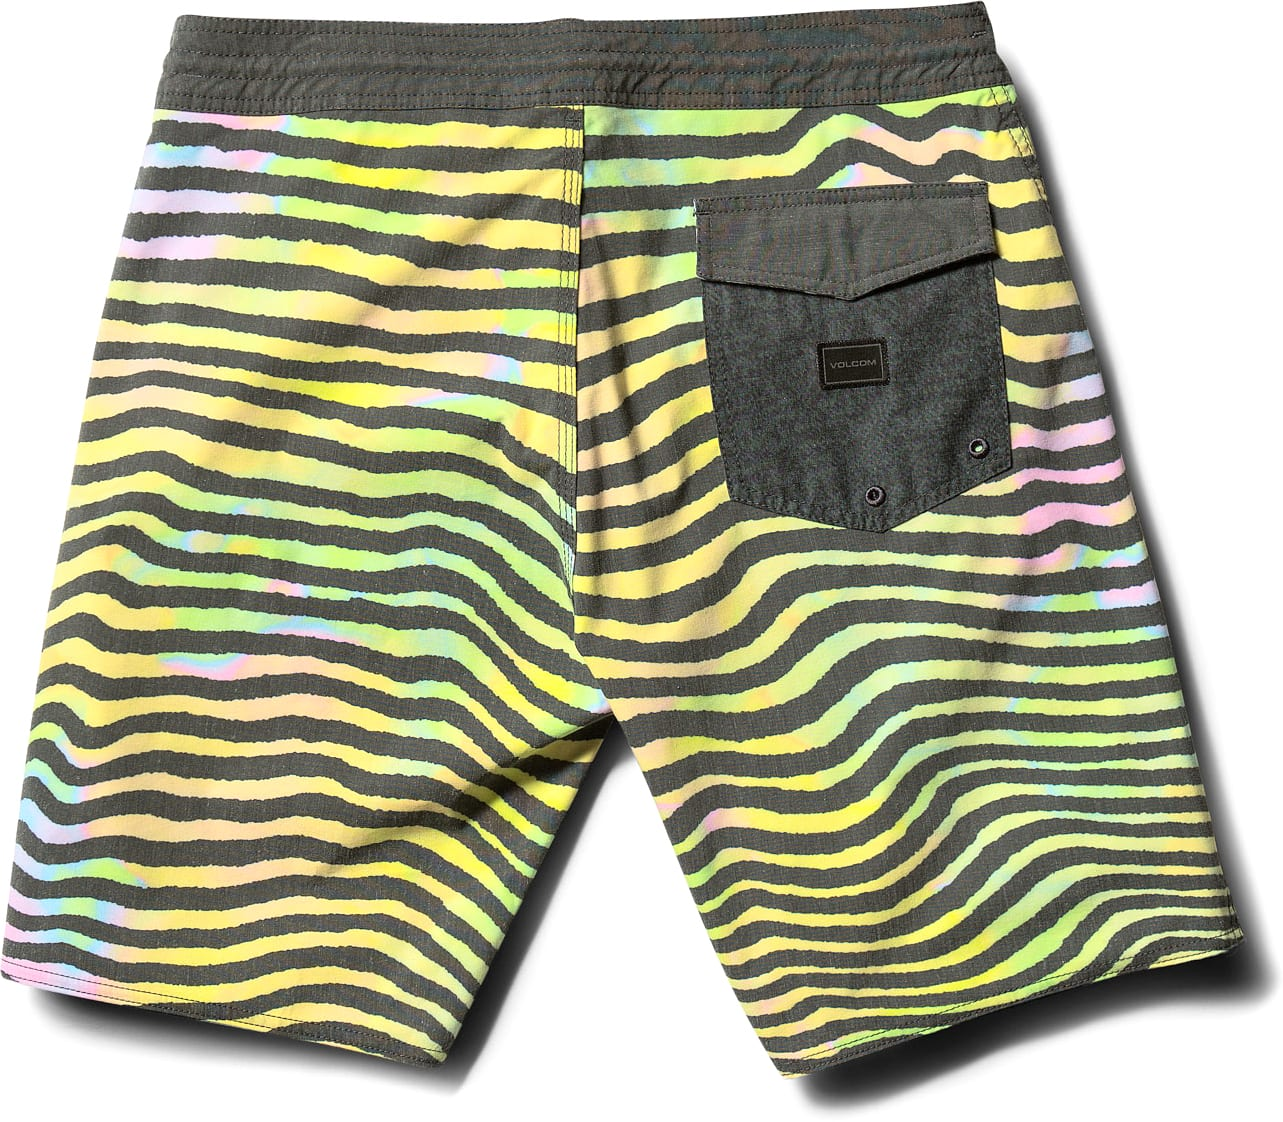 Maillots Stonney Pour Homme 19 Bain Multi Boardshort Volcom Mag Vibes De y6Ybf7g